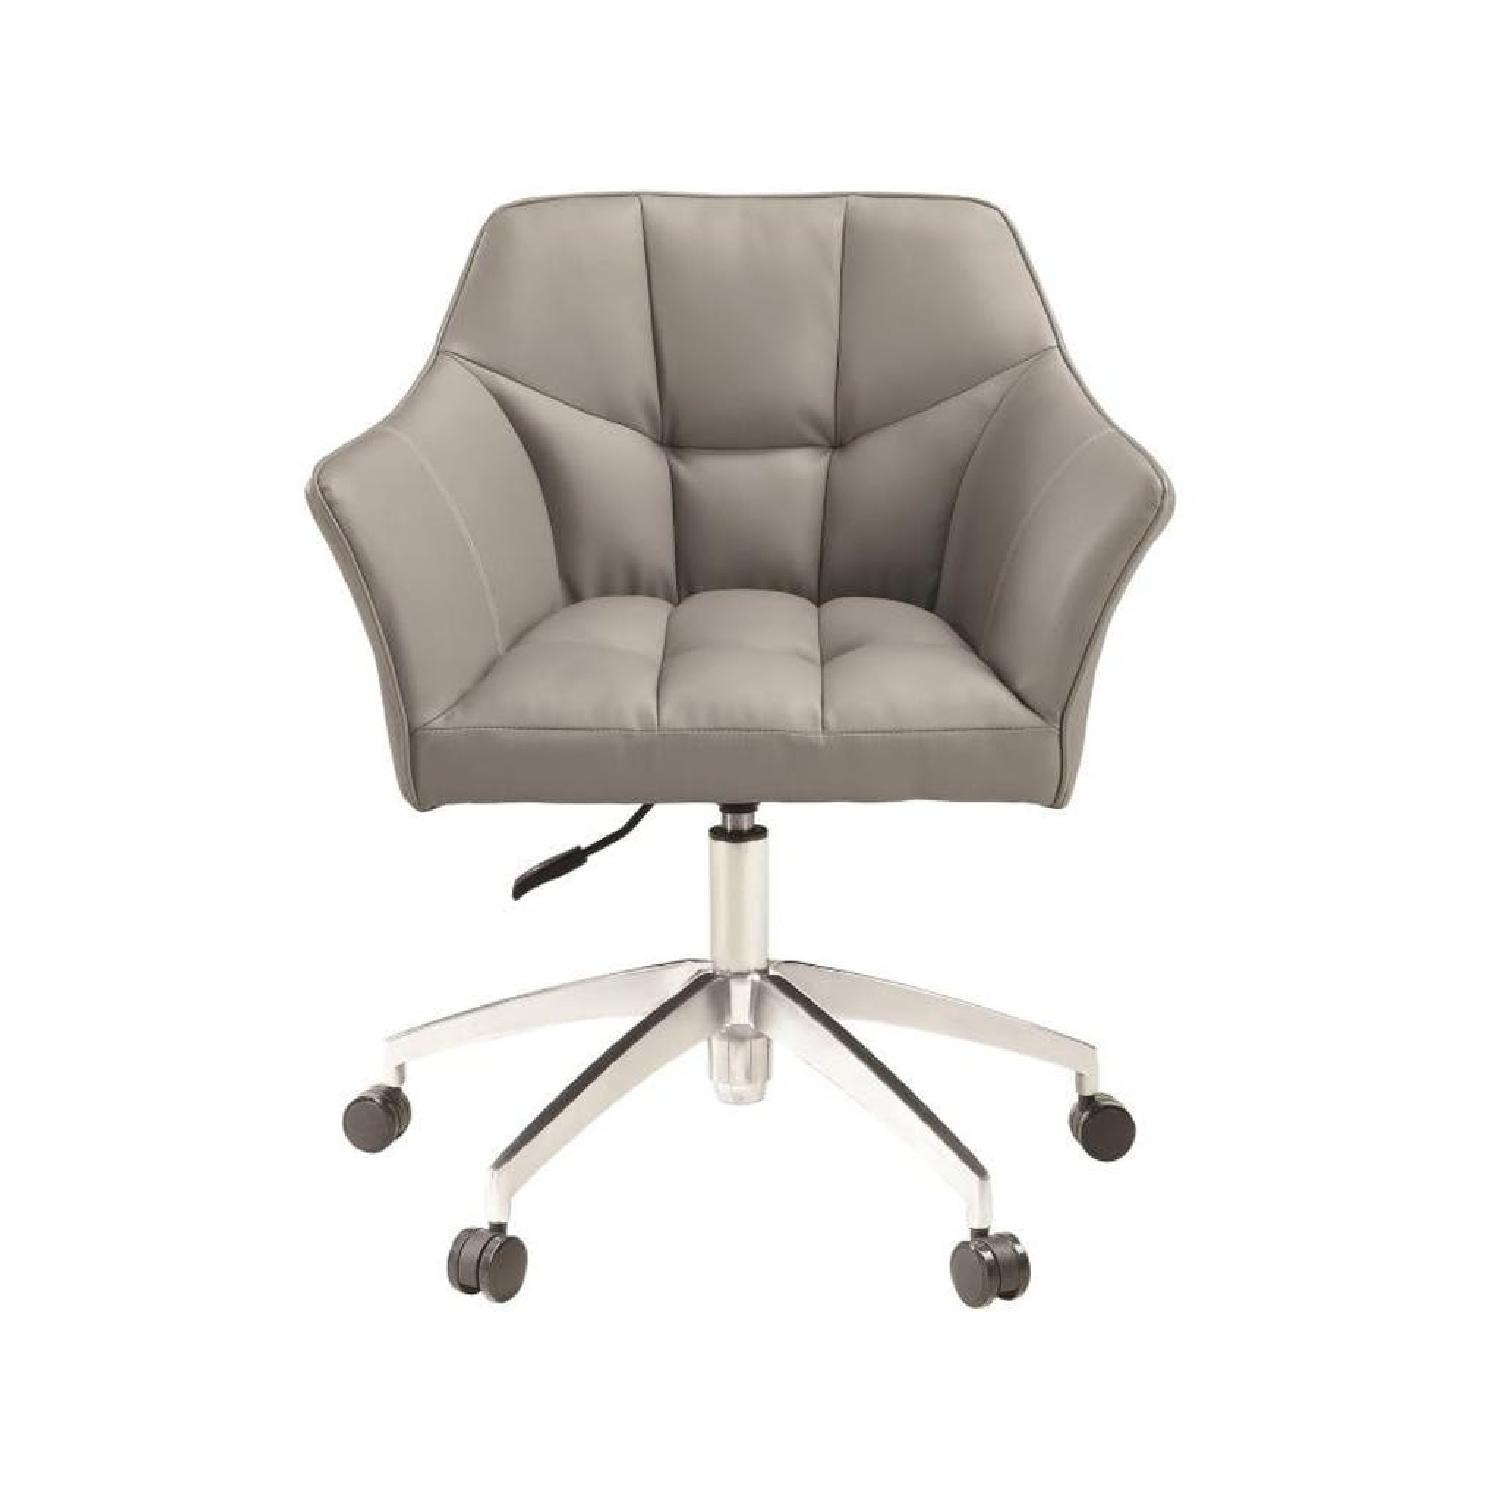 Modern Office Chair Upholstered in Grey Leatherette